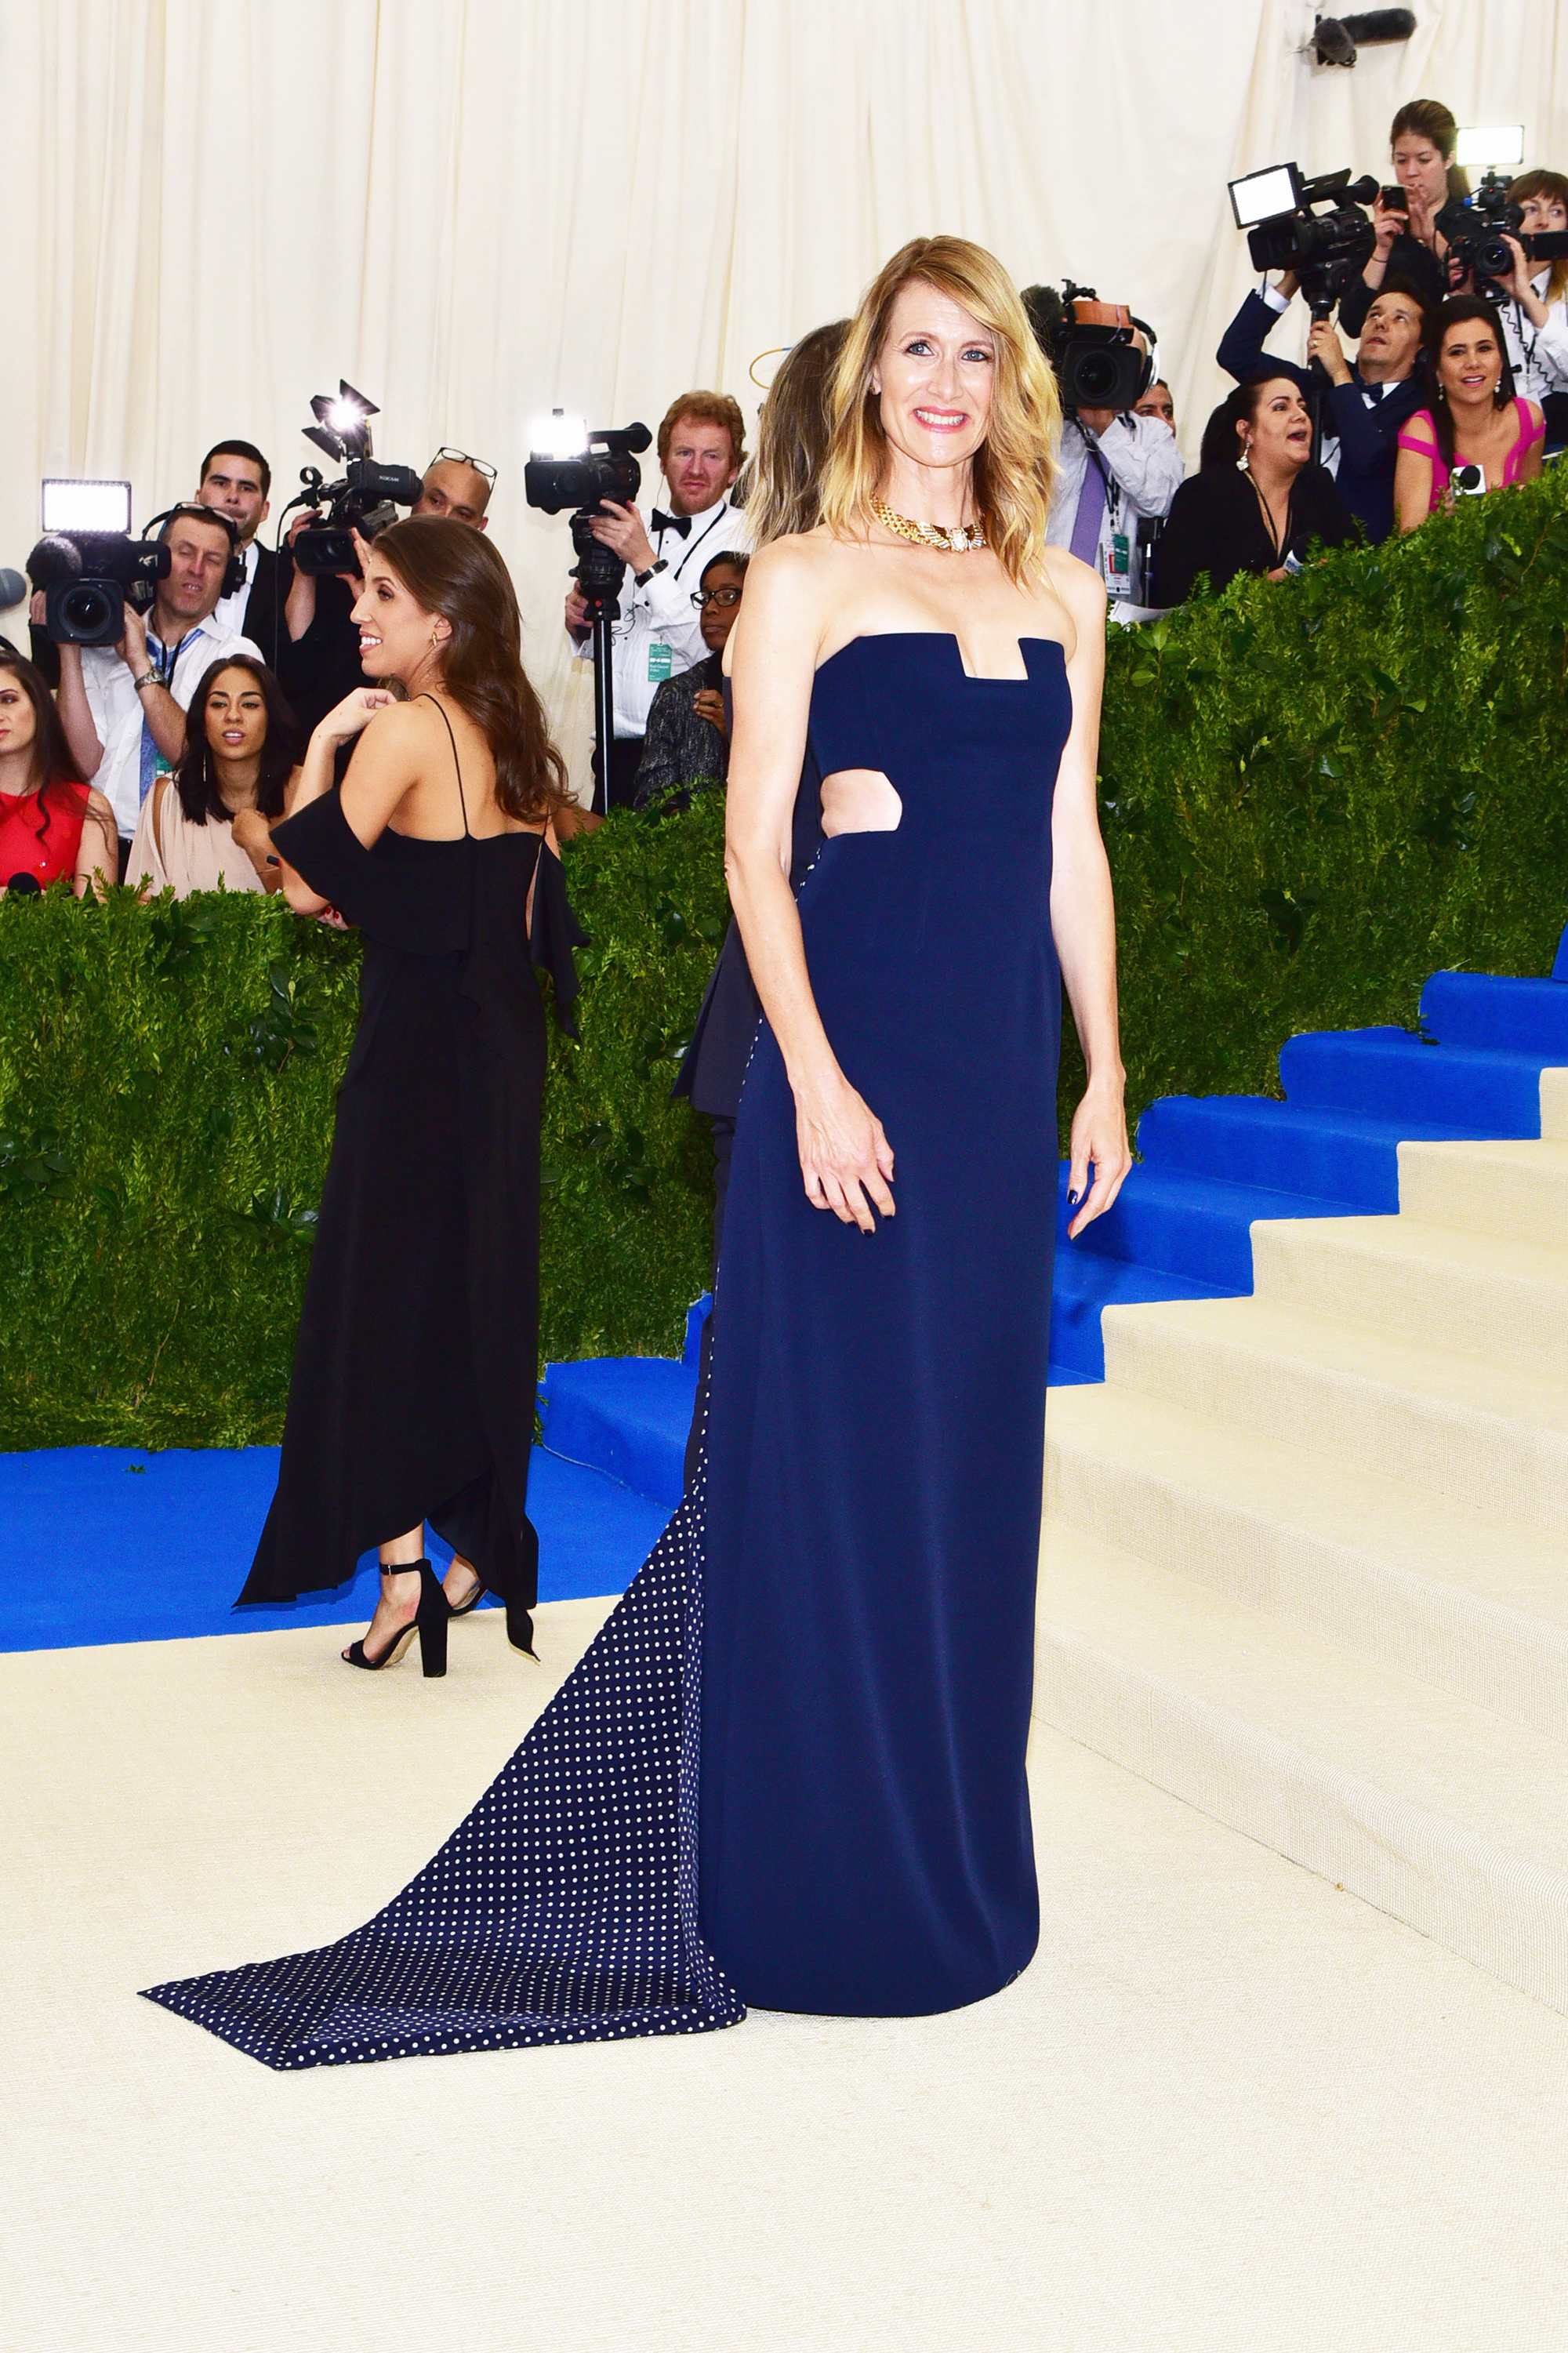 Laura Dern attends The Metropolitan Museum of Art's Costume Institute benefit gala celebrating the opening of the Rei Kawakubo/Comme des Garçons: Art of the In-Between exhibition in New York City, on May 1, 2017.